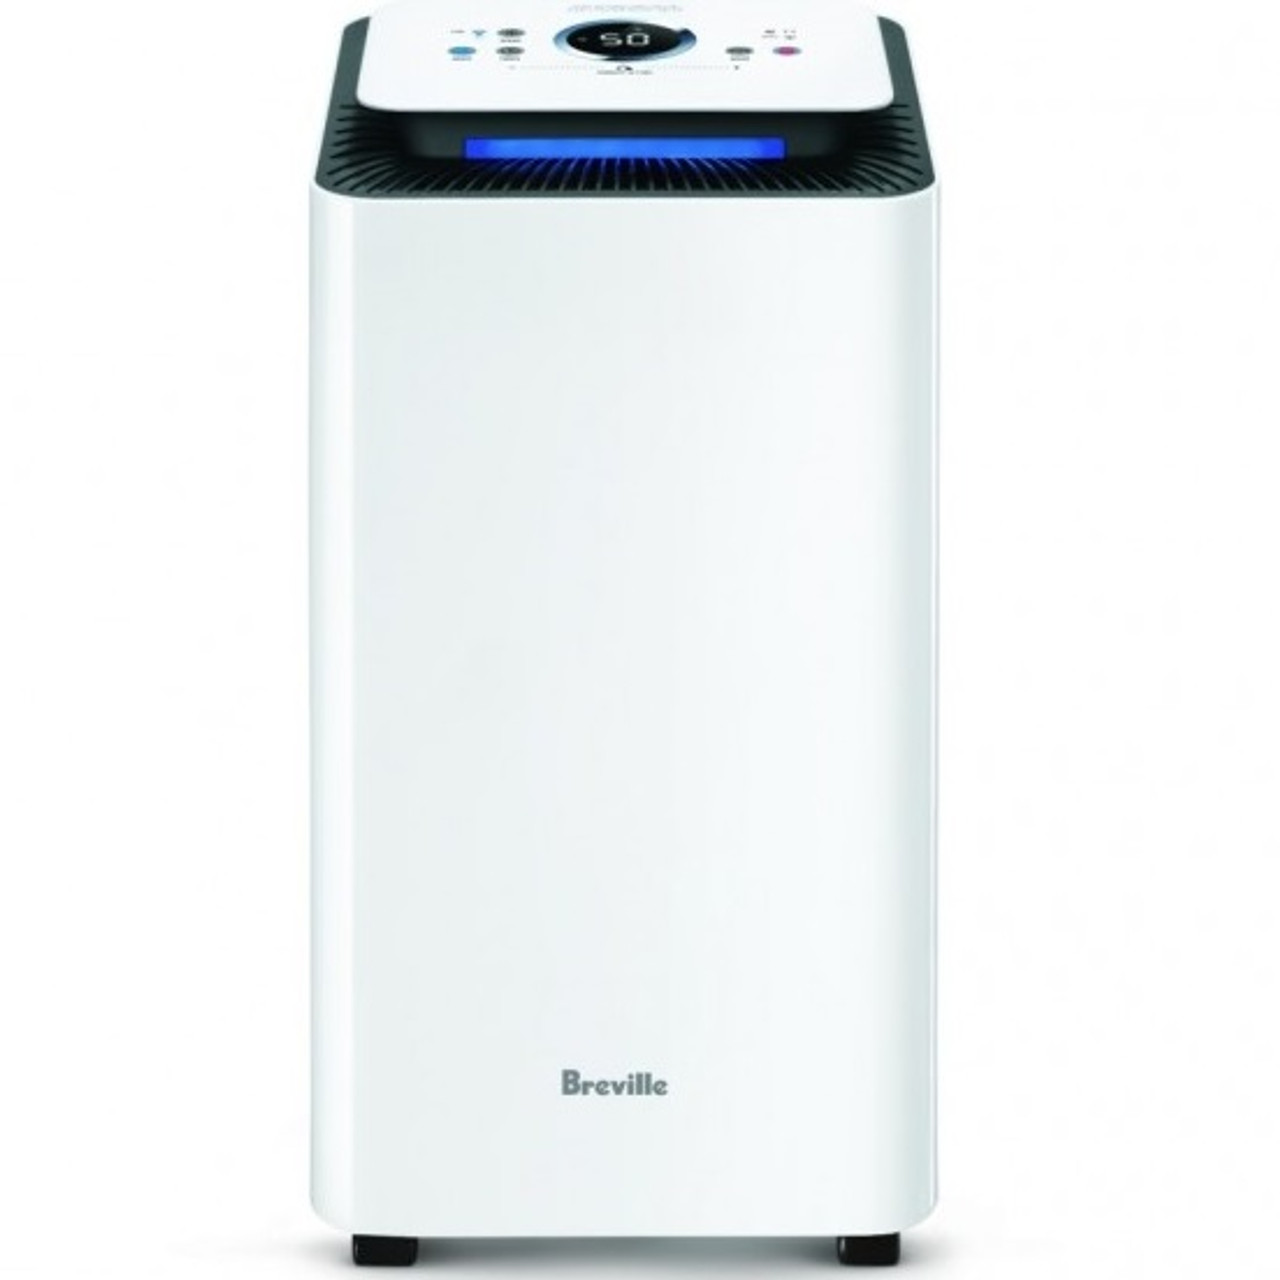 Breville LAD200WHT the Smart Dry Dehumidifier - White - RRP $349.95